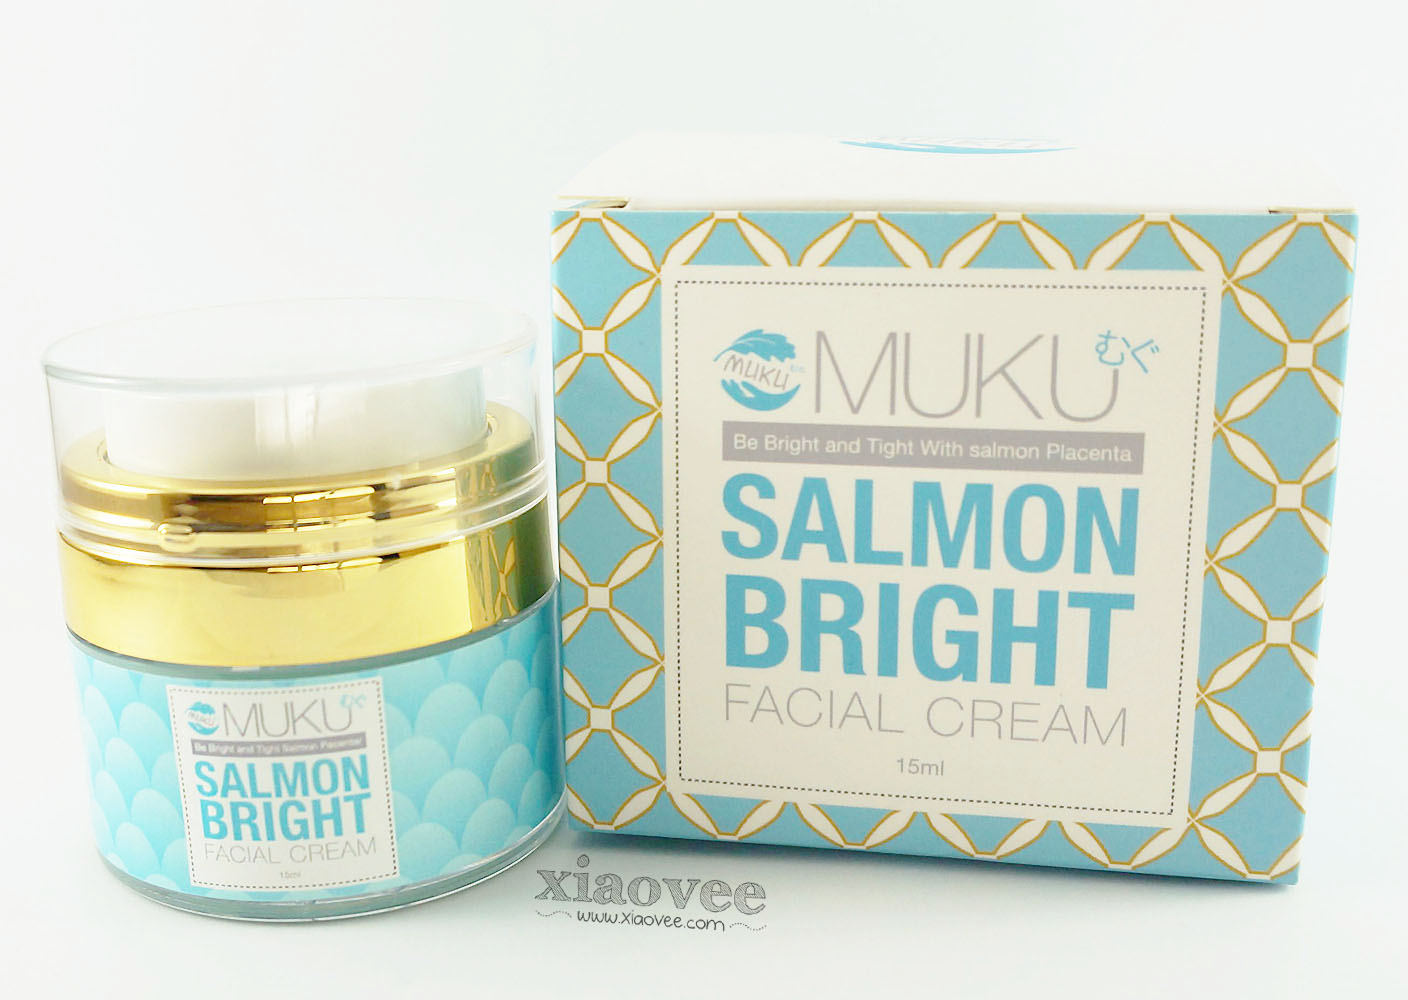 Salmon Bright Facial Cream by MUKU